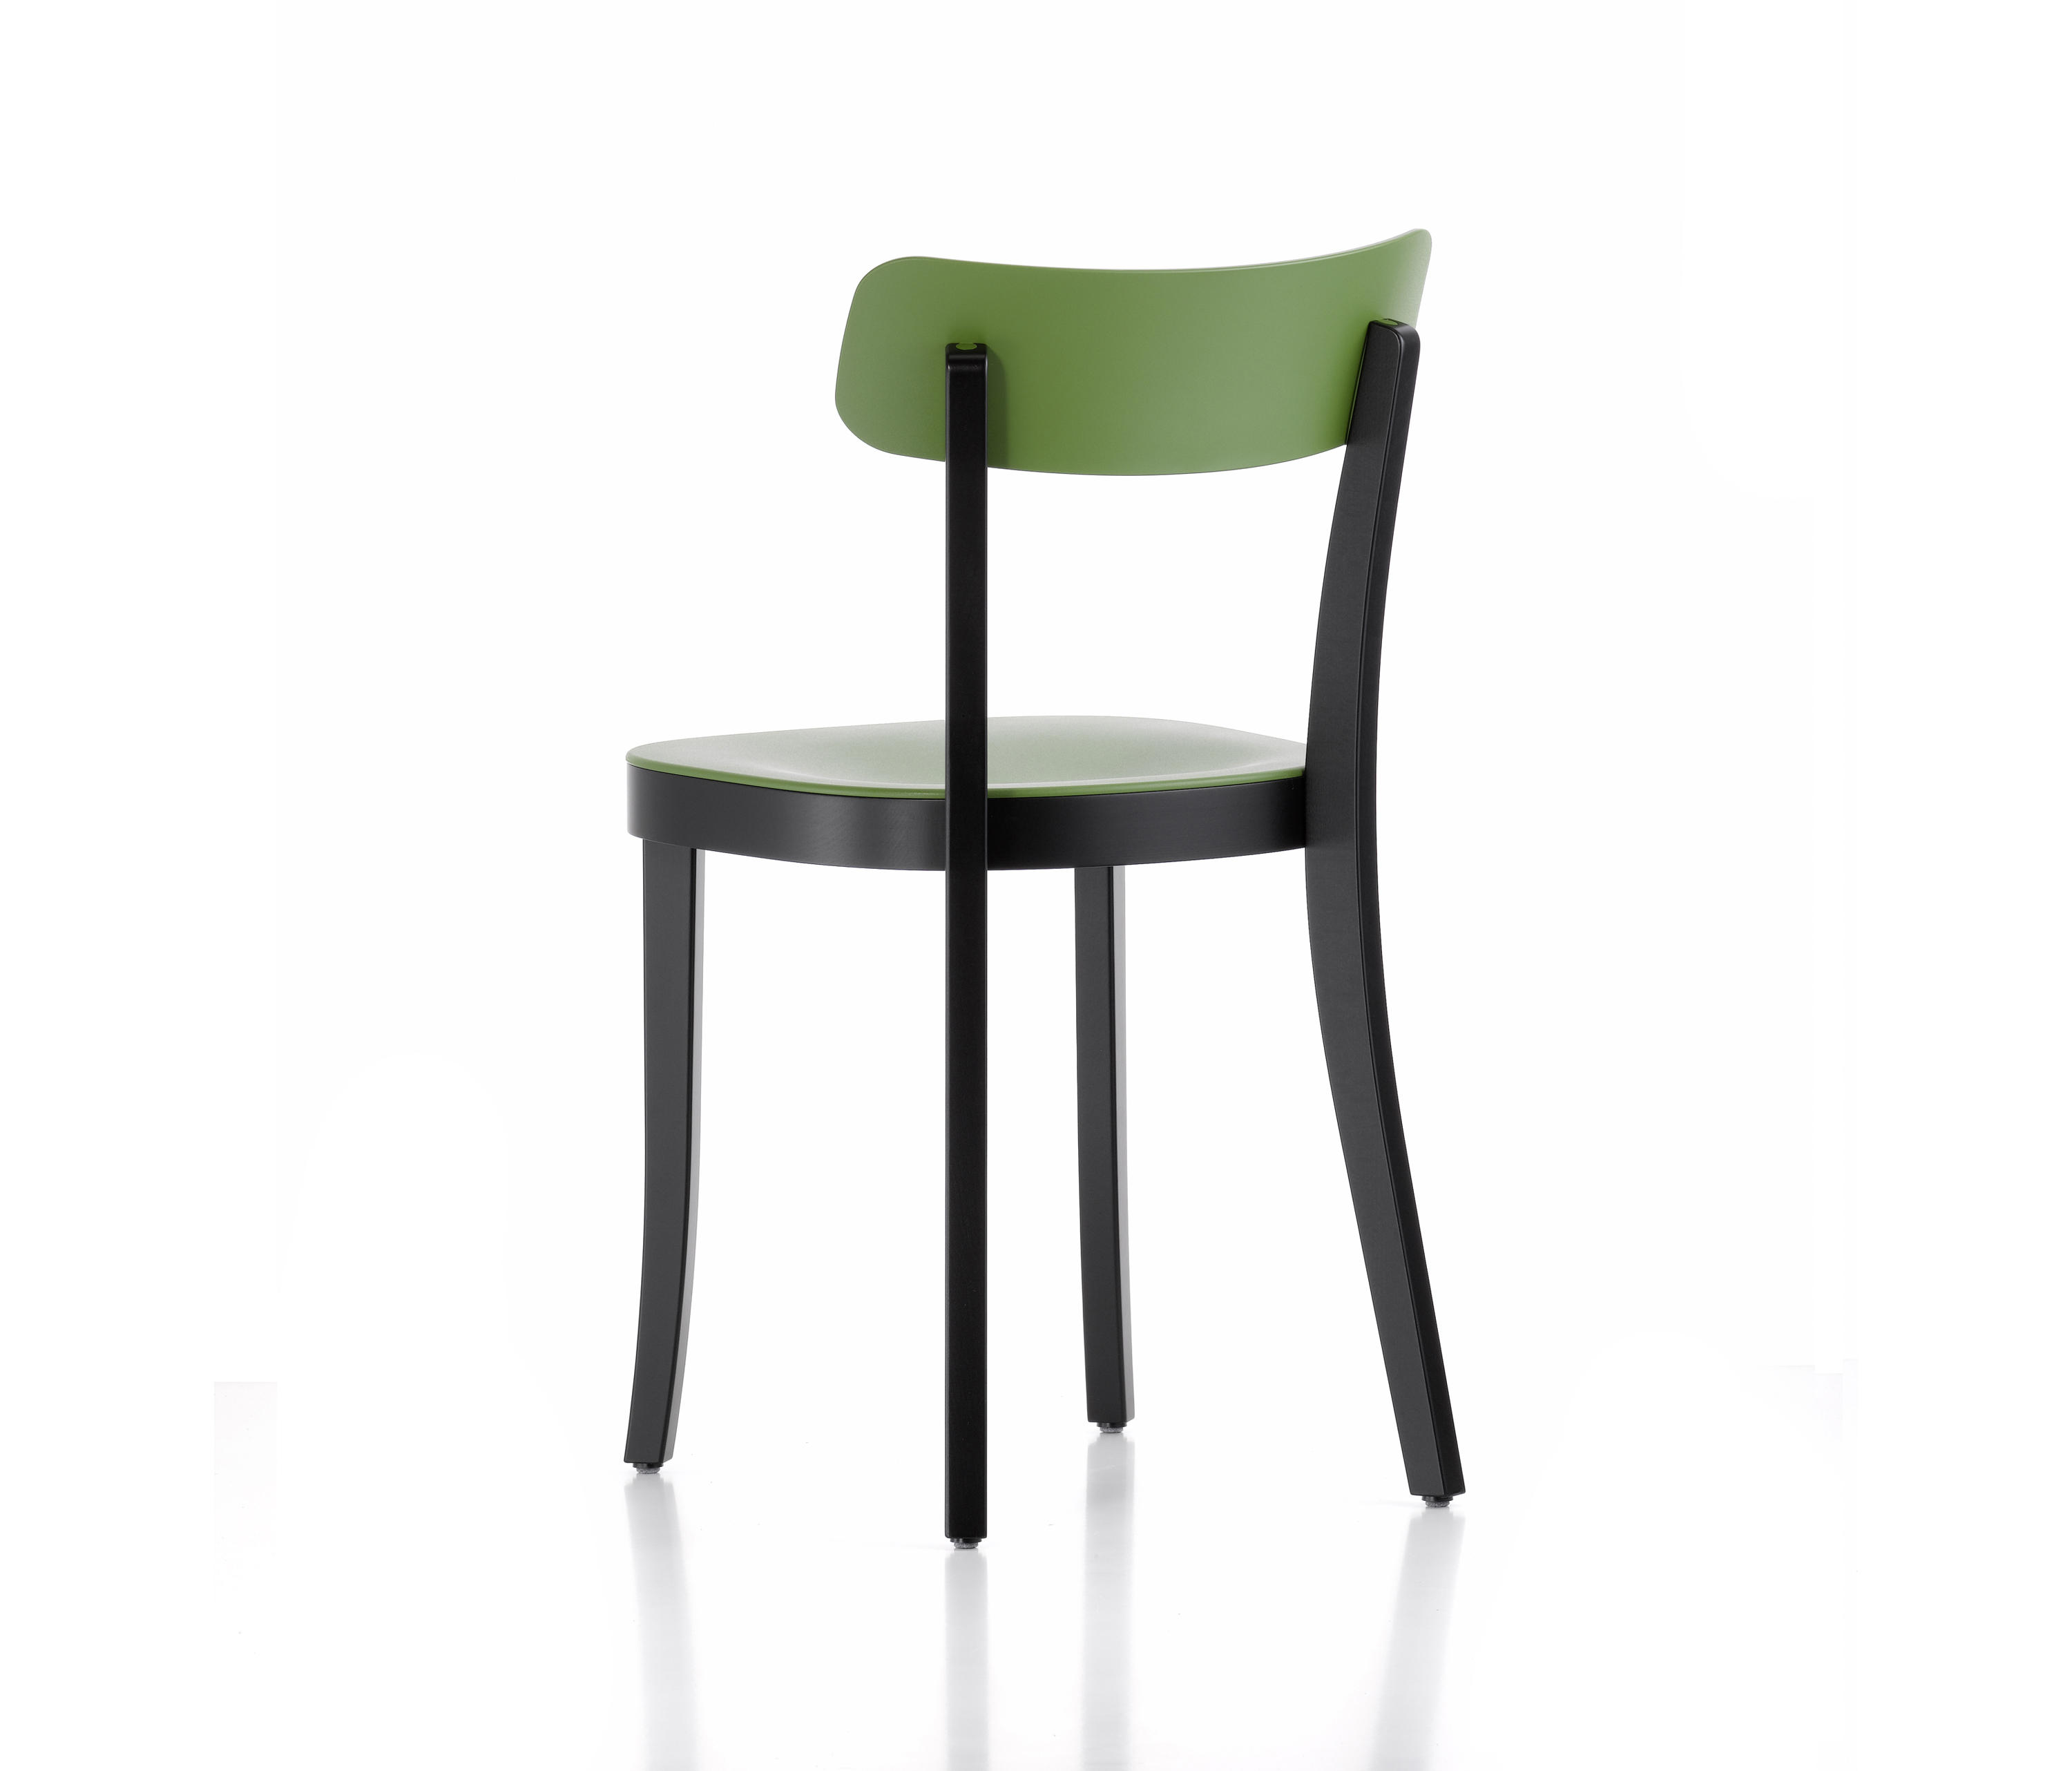 CHAIR Chairs from VitraArchitonic BASEL CHAIR BASEL E2D9YbWHeI